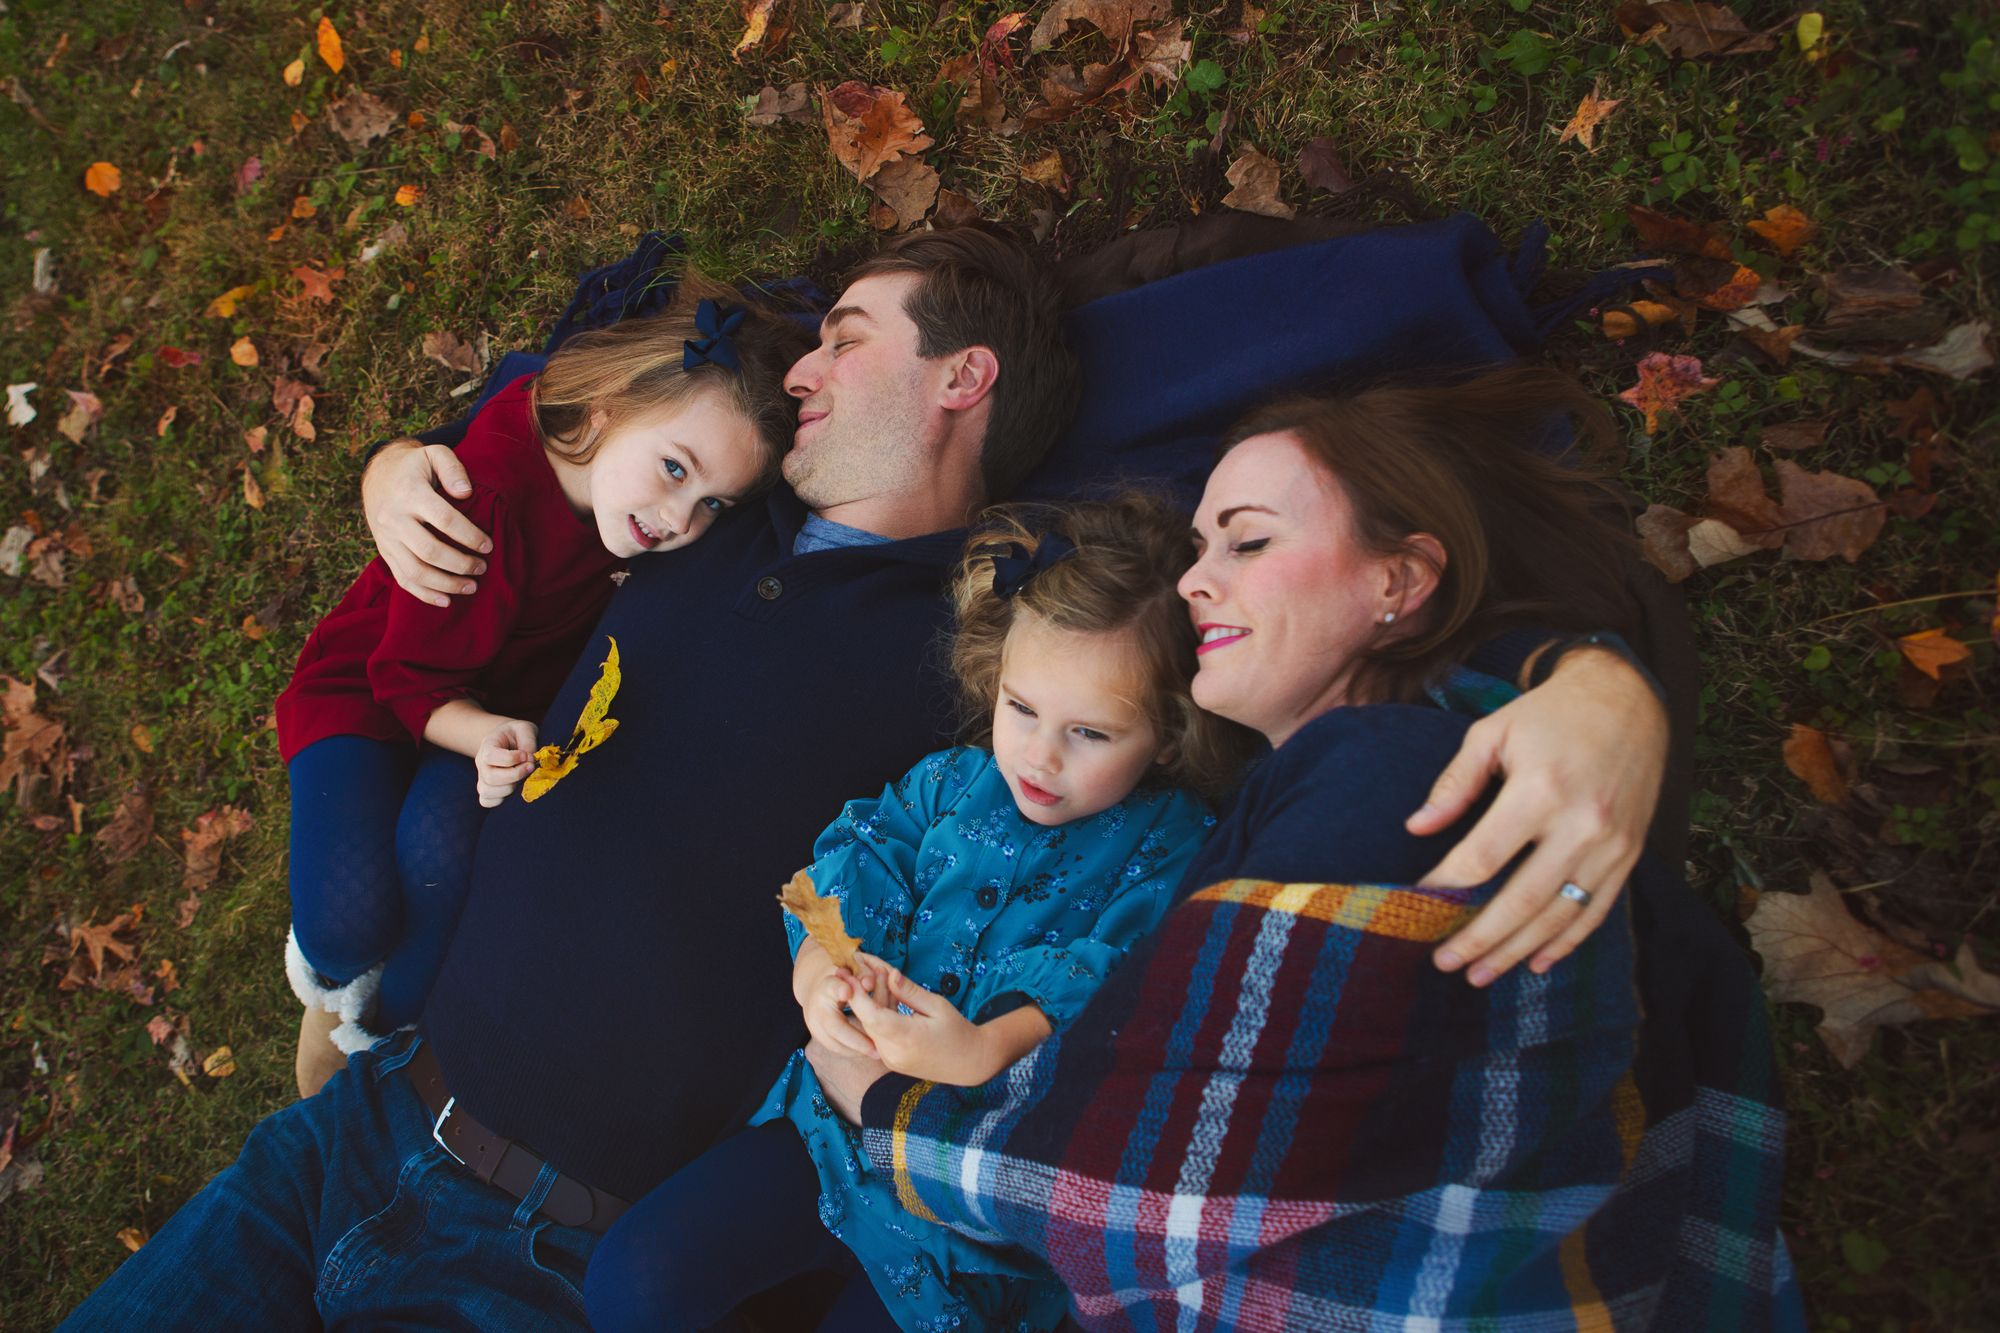 Family posing on grass during an outdoor photo shoot